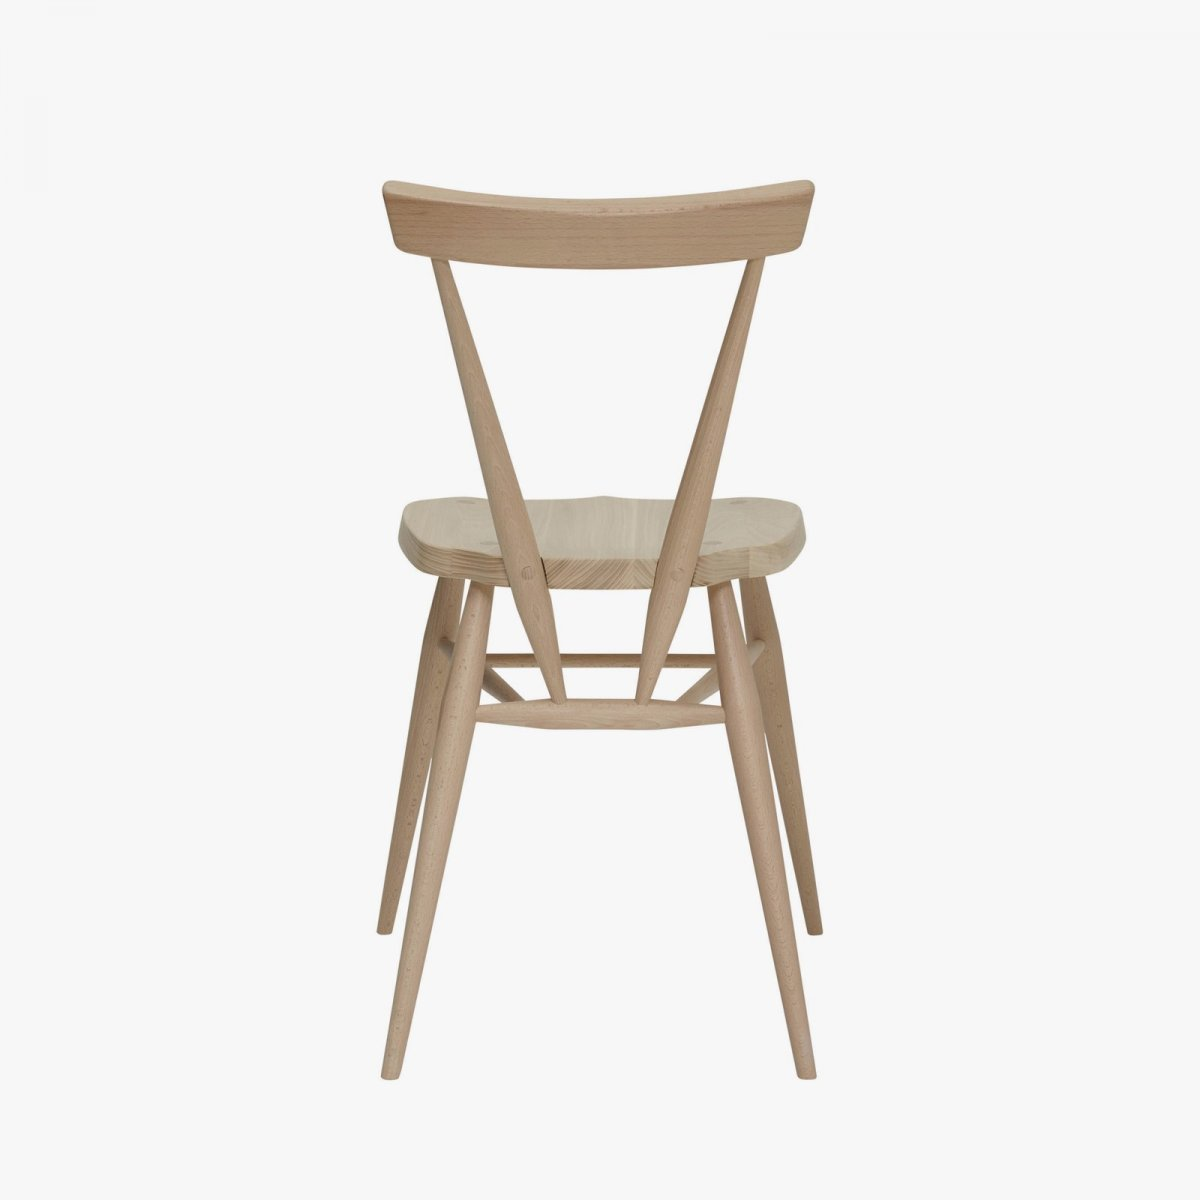 Originals Stacking Chair, front view, back view.